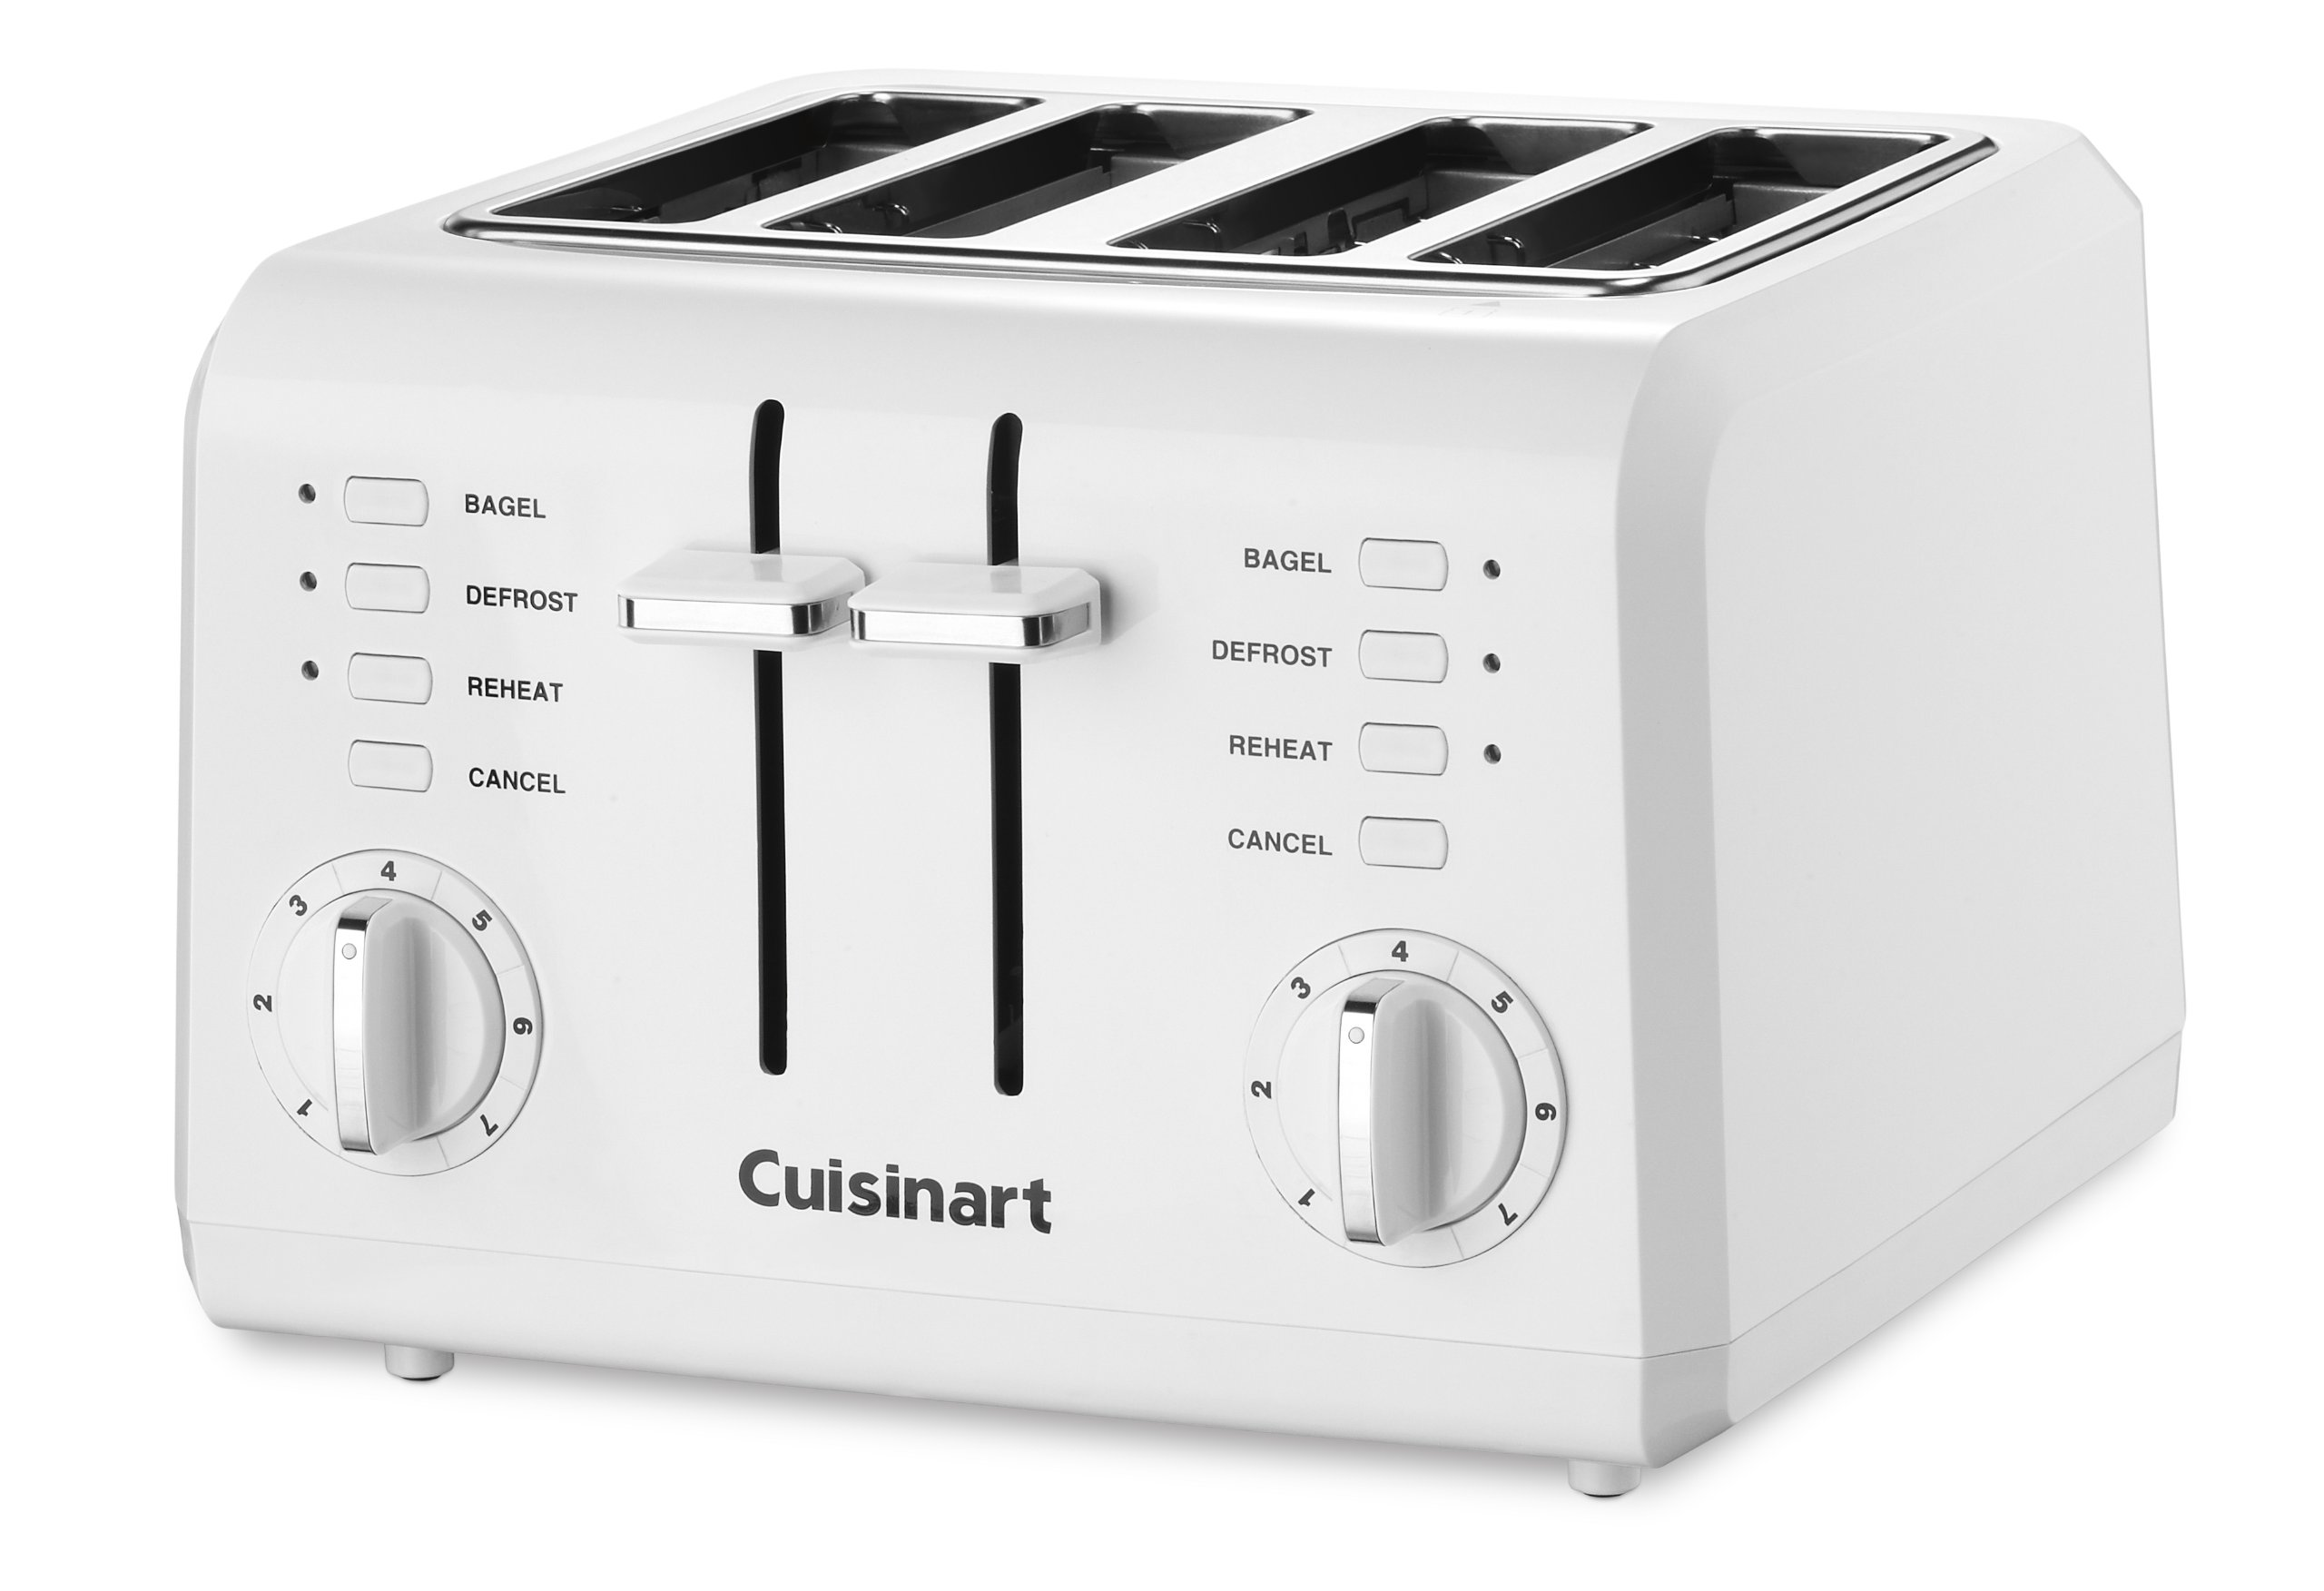 Cuisinart CPT-142 Compact 4-Slice Toaster, White by Cuisinart